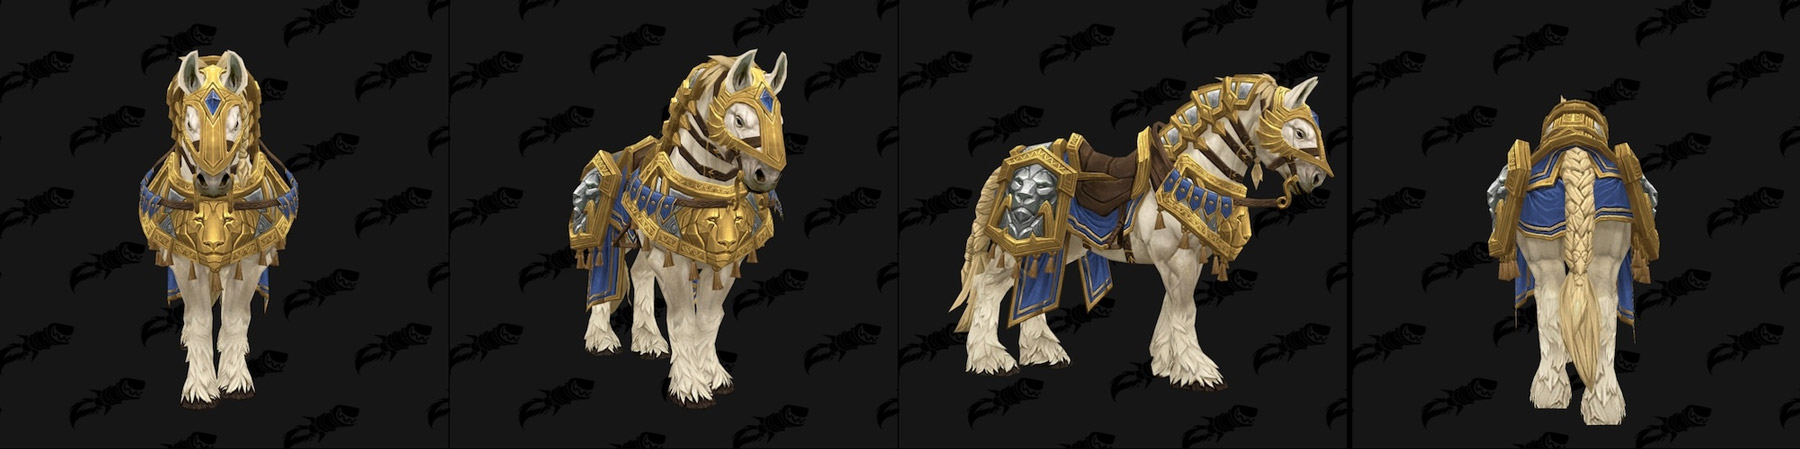 Monture d'Anduin dans Battle for Azeroth